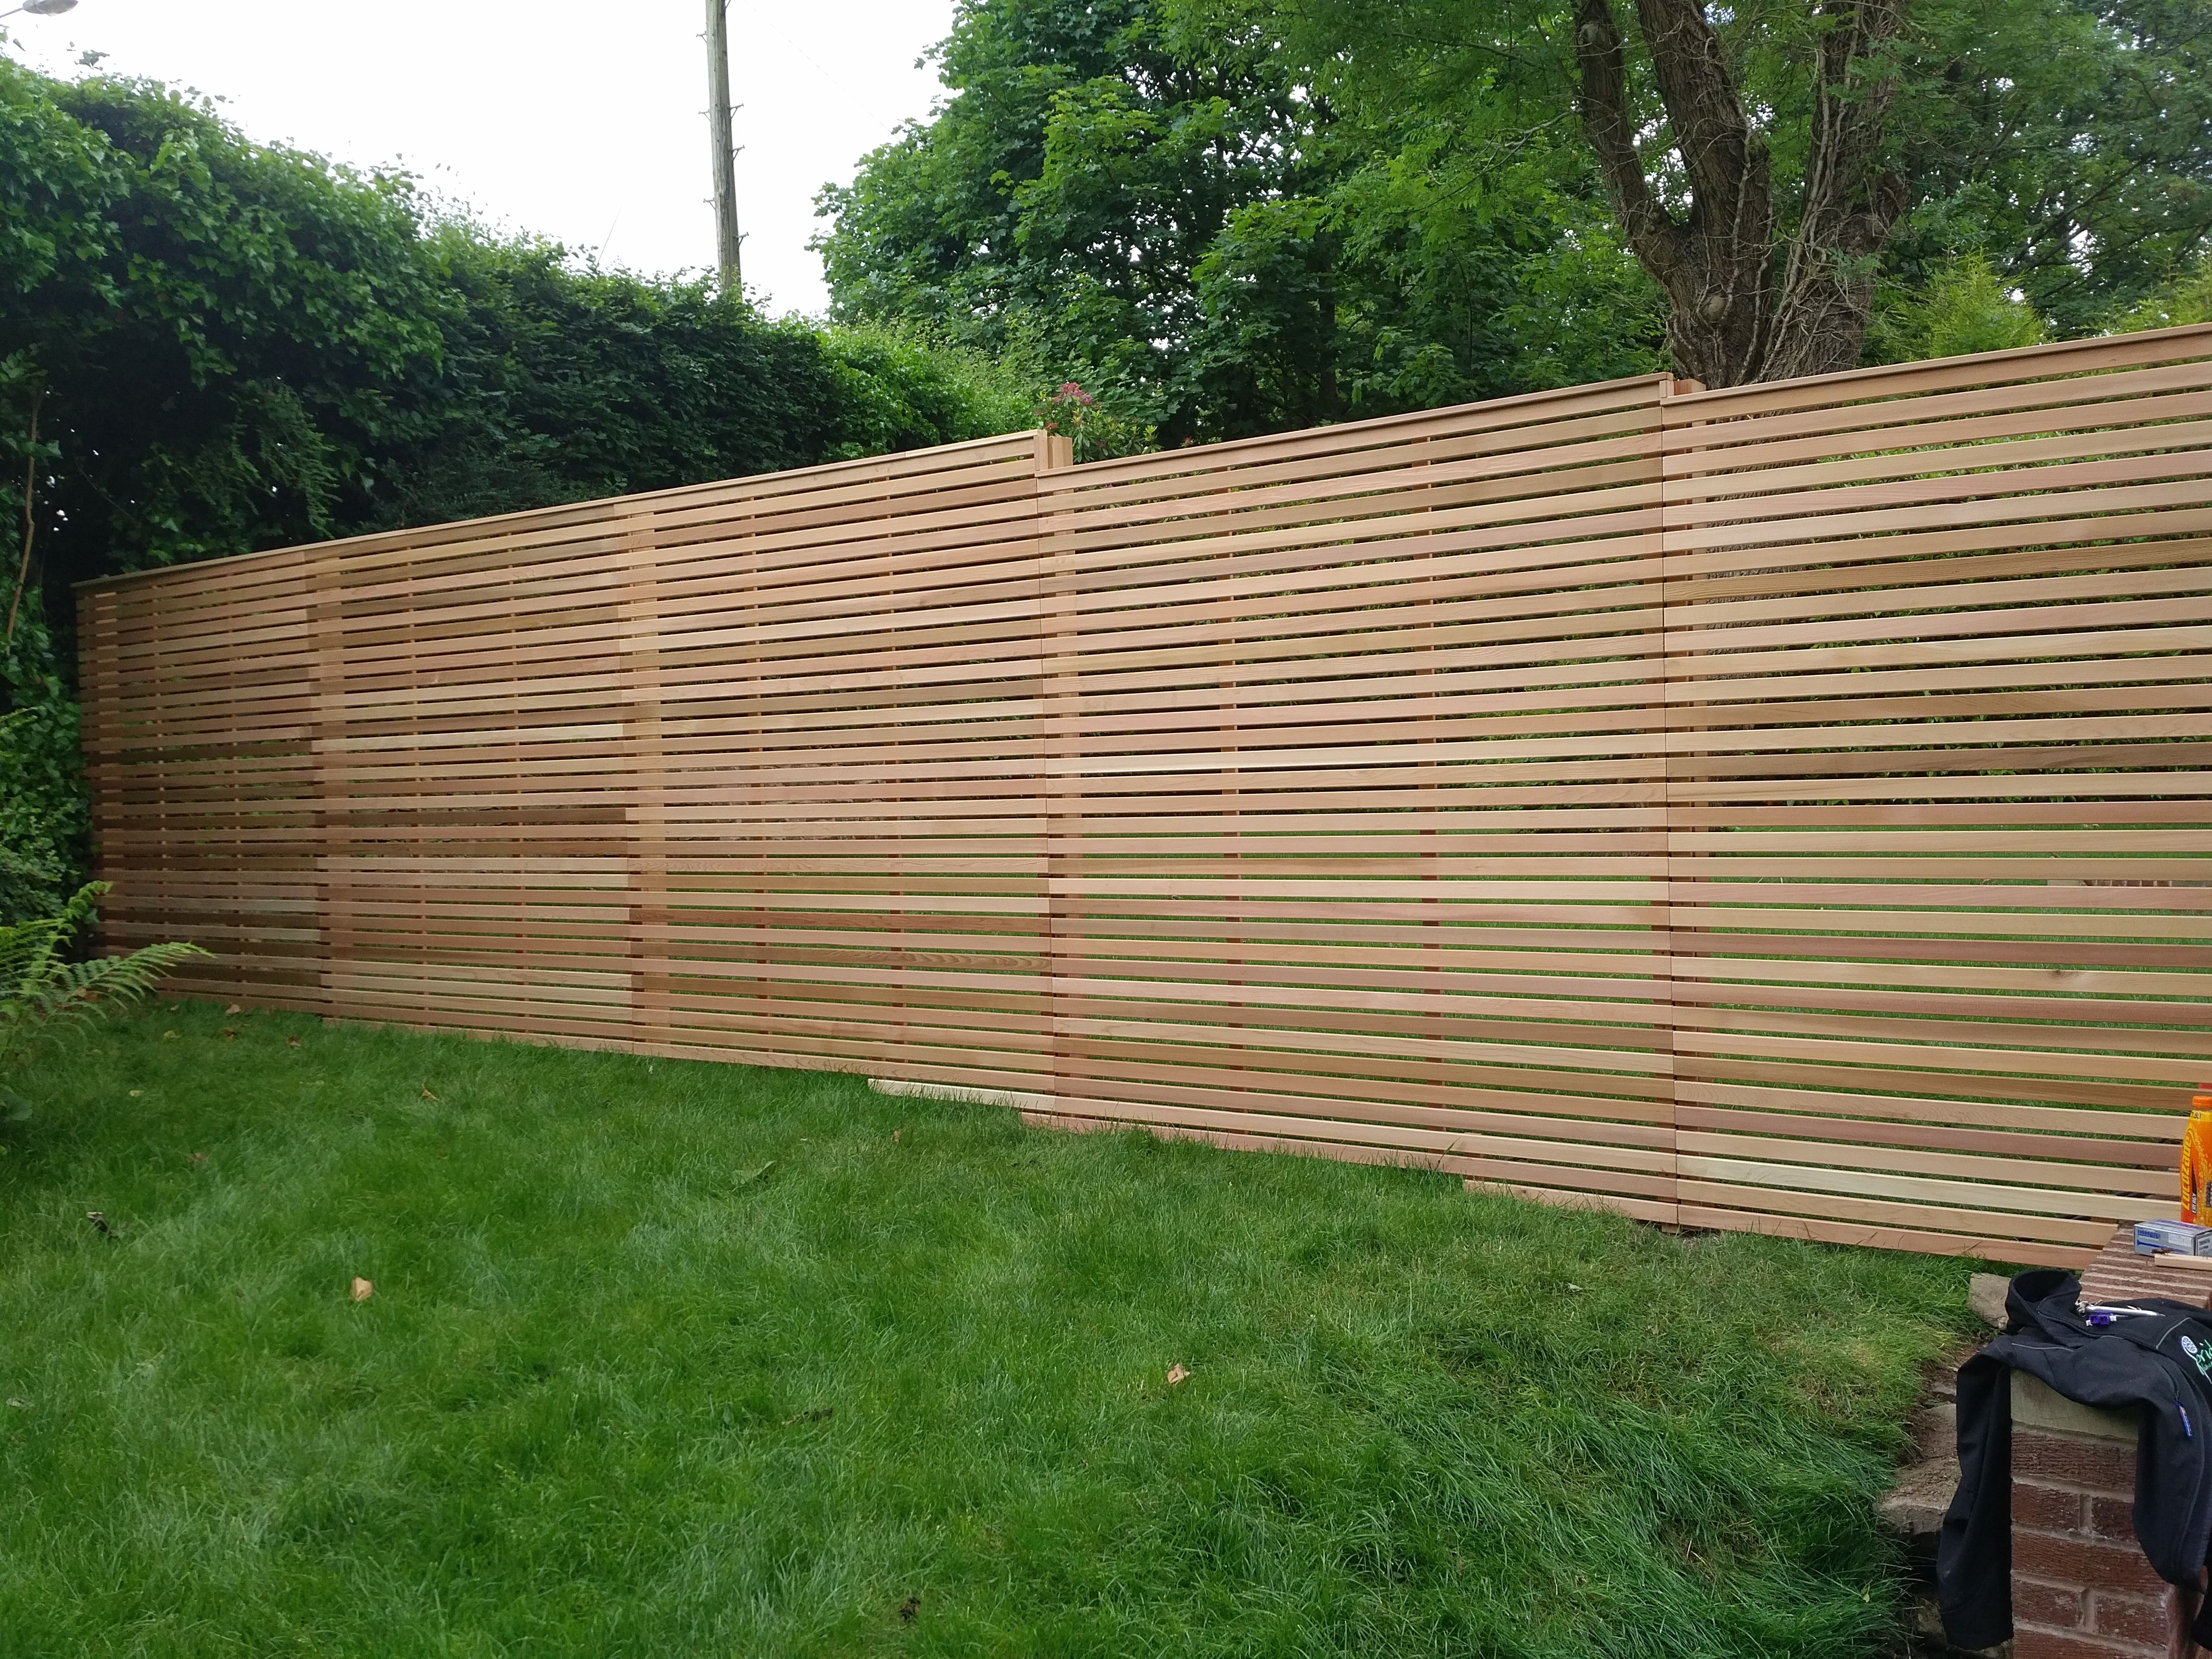 Contemporary Slatted Fence Panels Garden Design Plans Fence Design Slatted Fence Panels